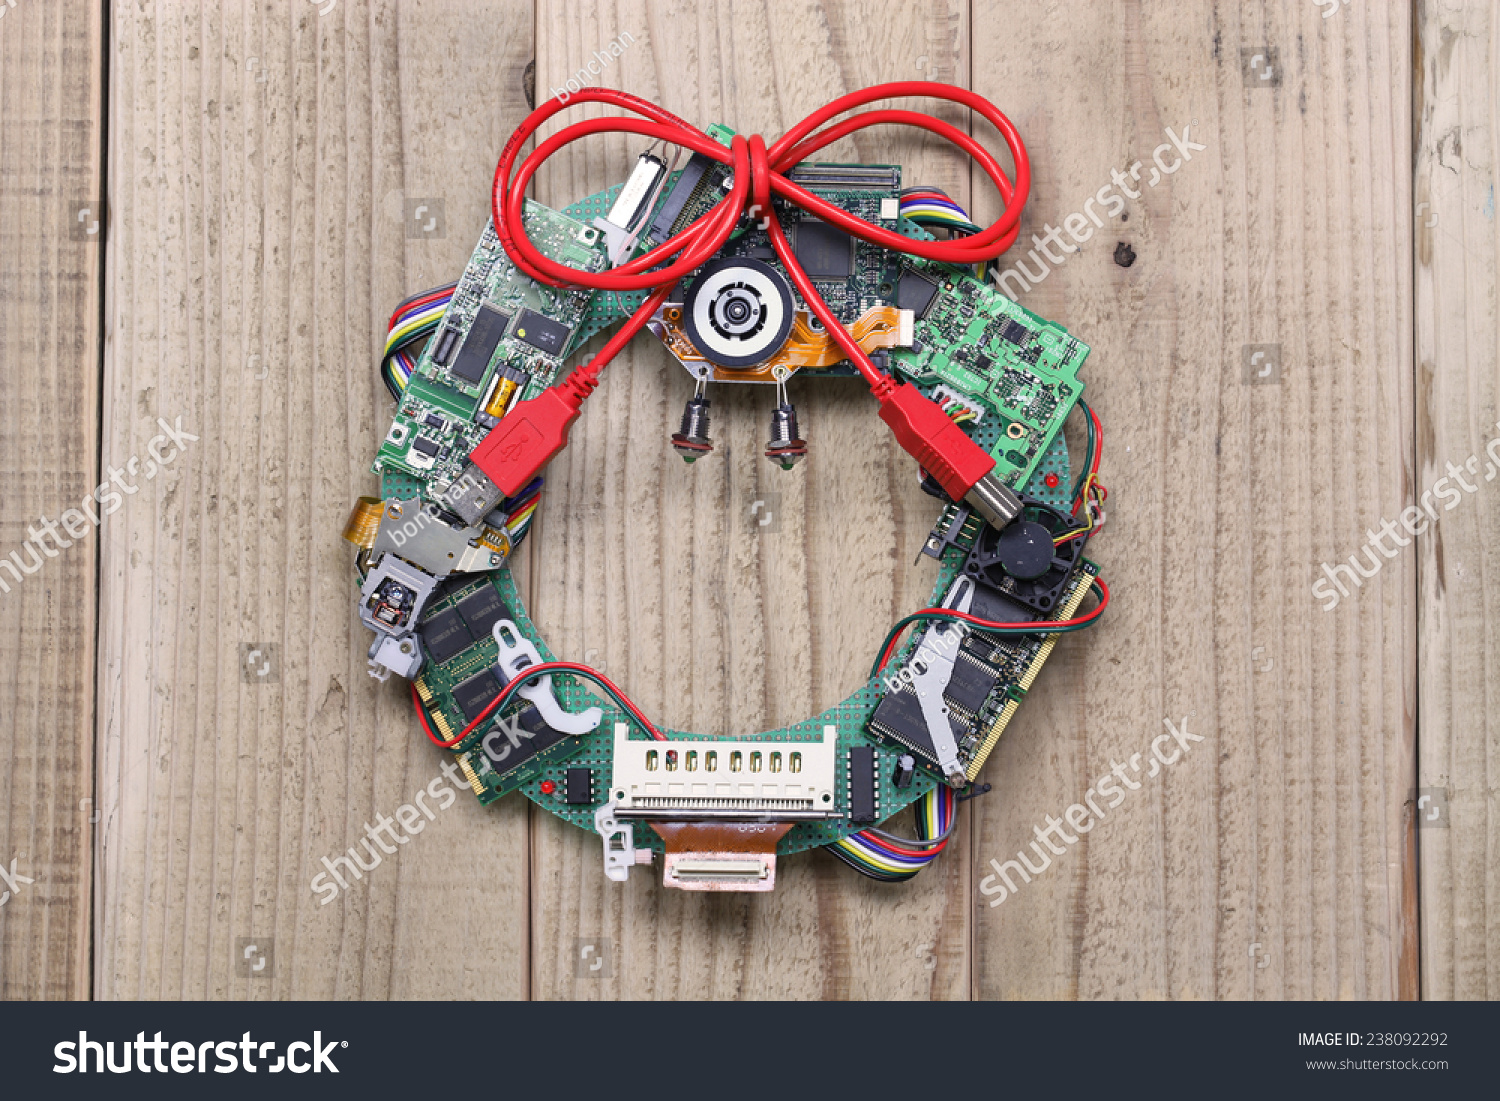 Wreath from old christmas cards - Geeky Christmas Wreath Made By Old Computer Parts Hanging On Wooden Door Computer Parts Recycling